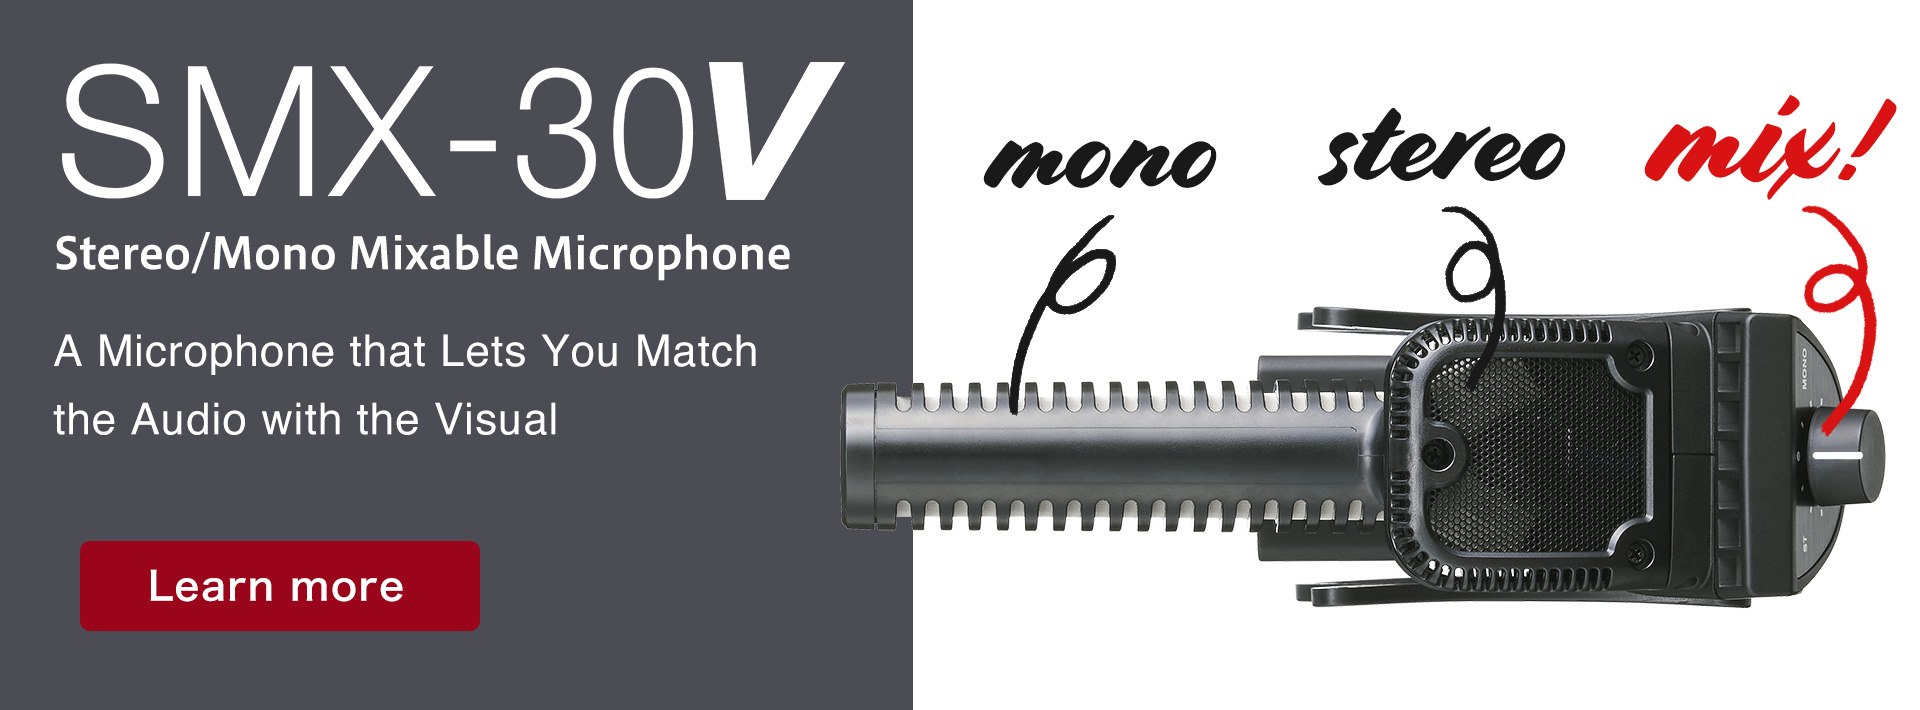 SMX-30V Stereo/Mono Mixable Microphone